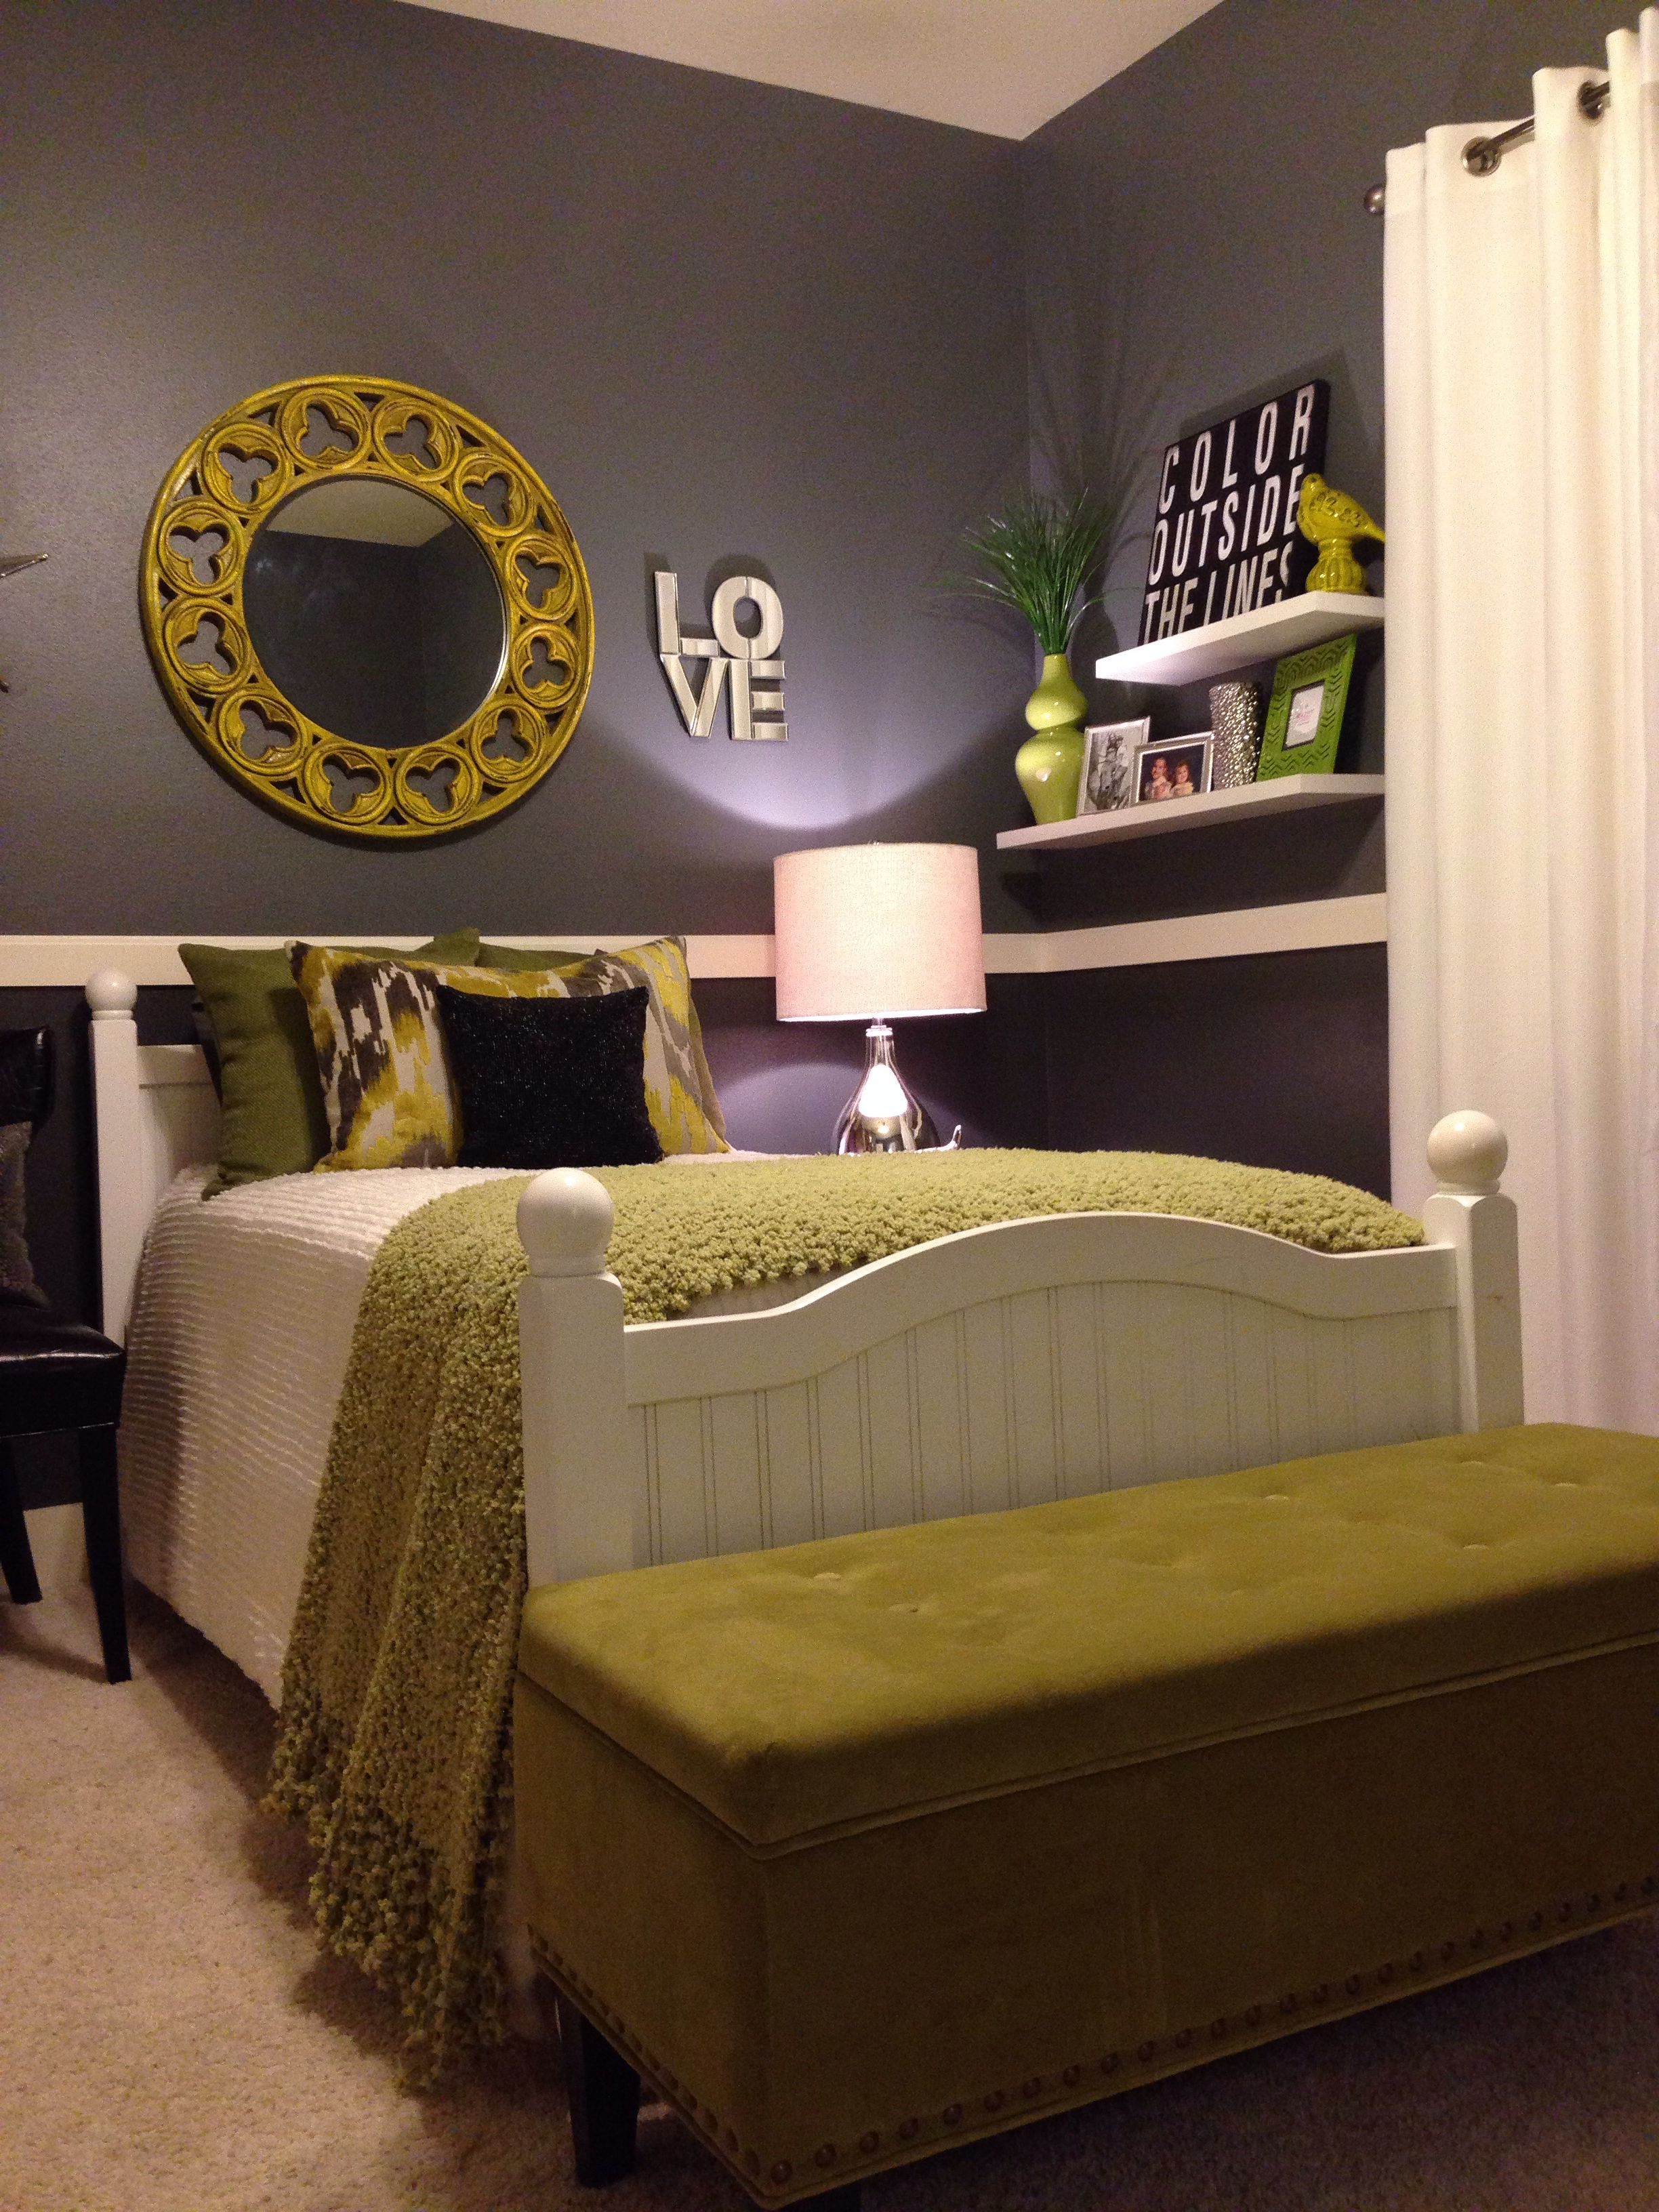 """I love the """"love"""" above the bed 